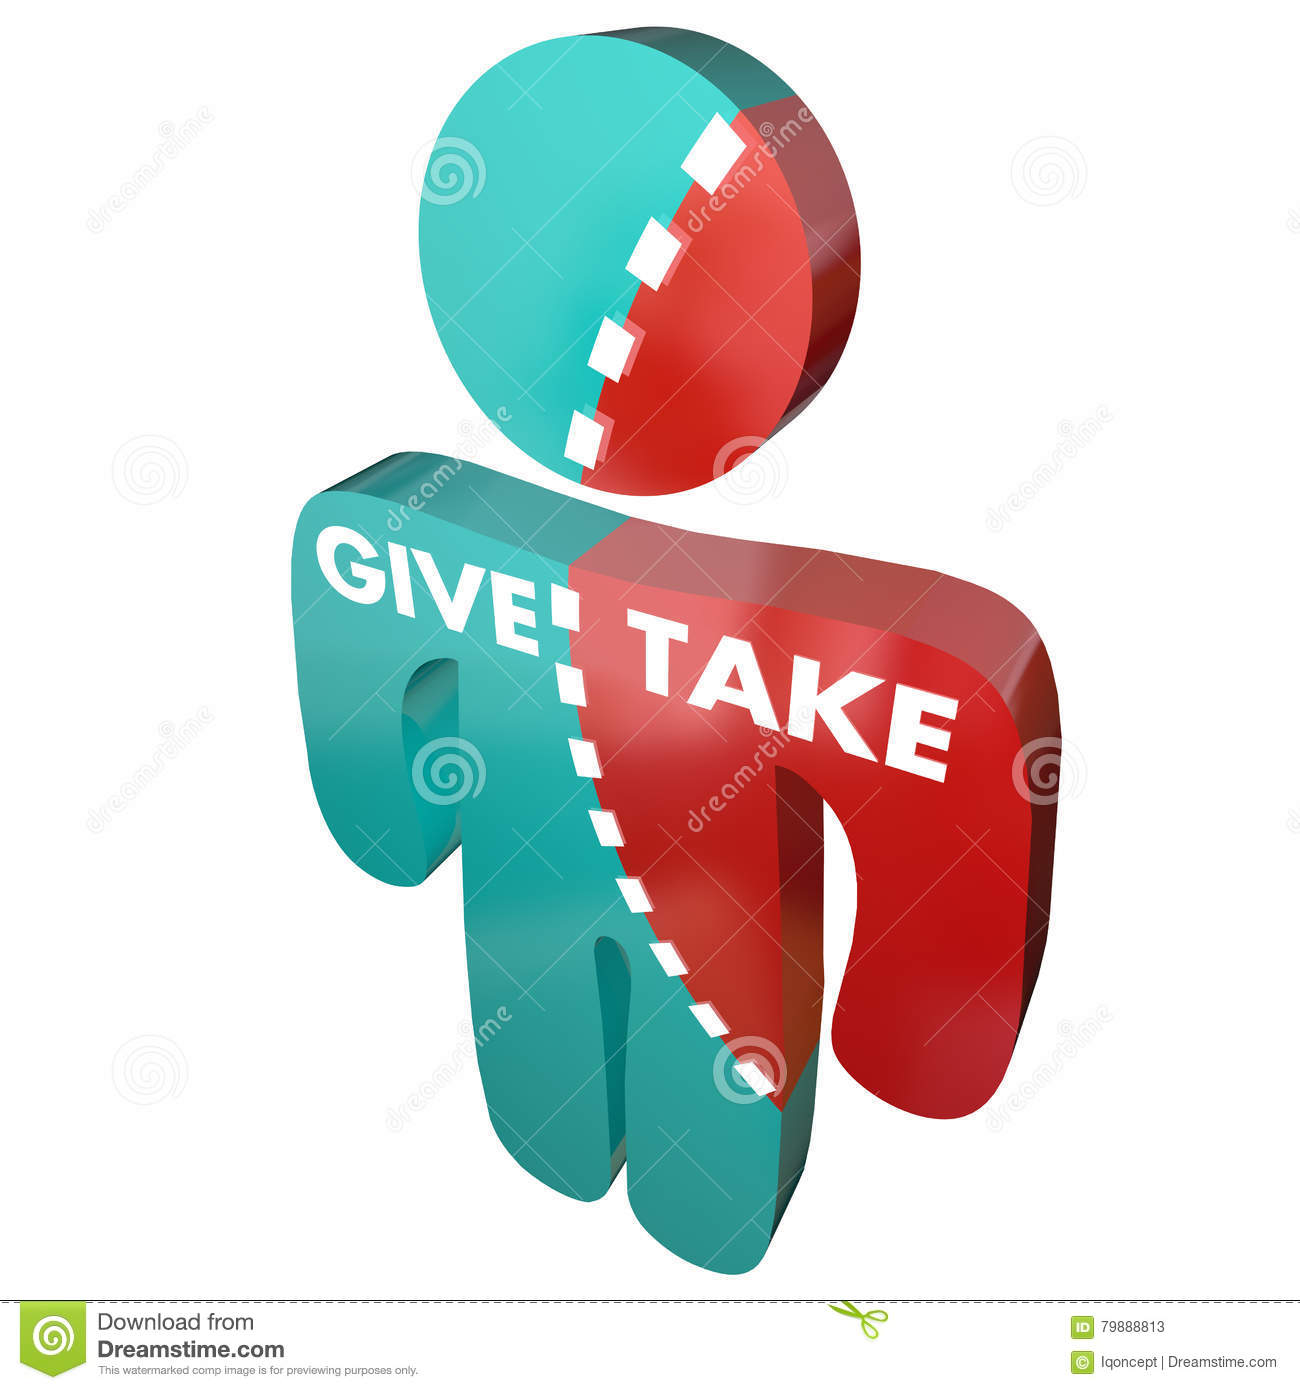 Ge och ta Person Share Sharing Giving